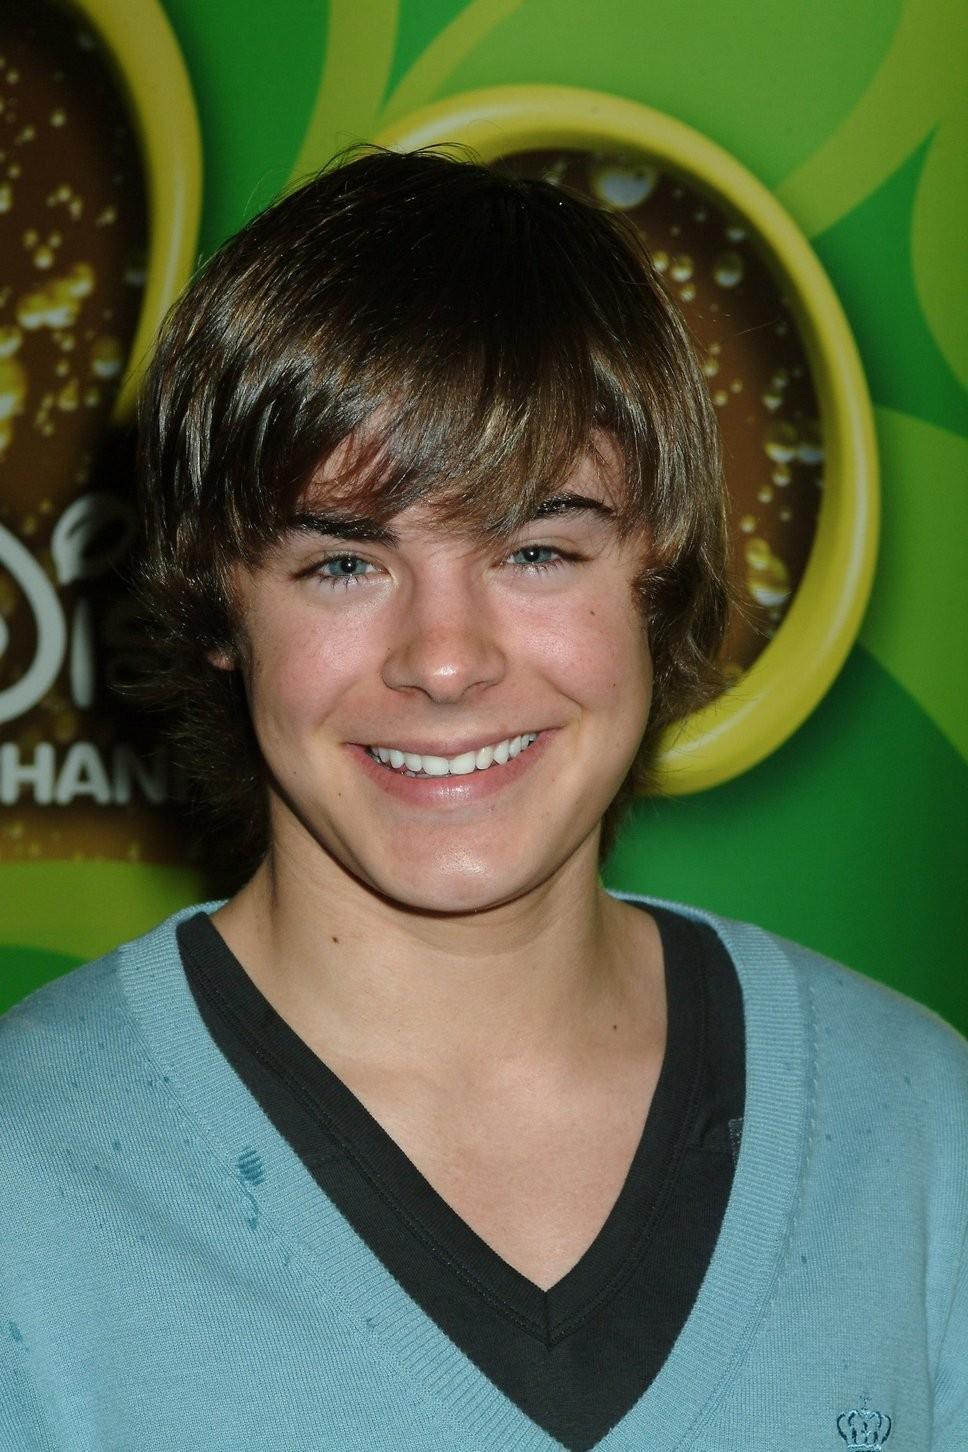 Zac Efron Before And After Plastic Surgery 1